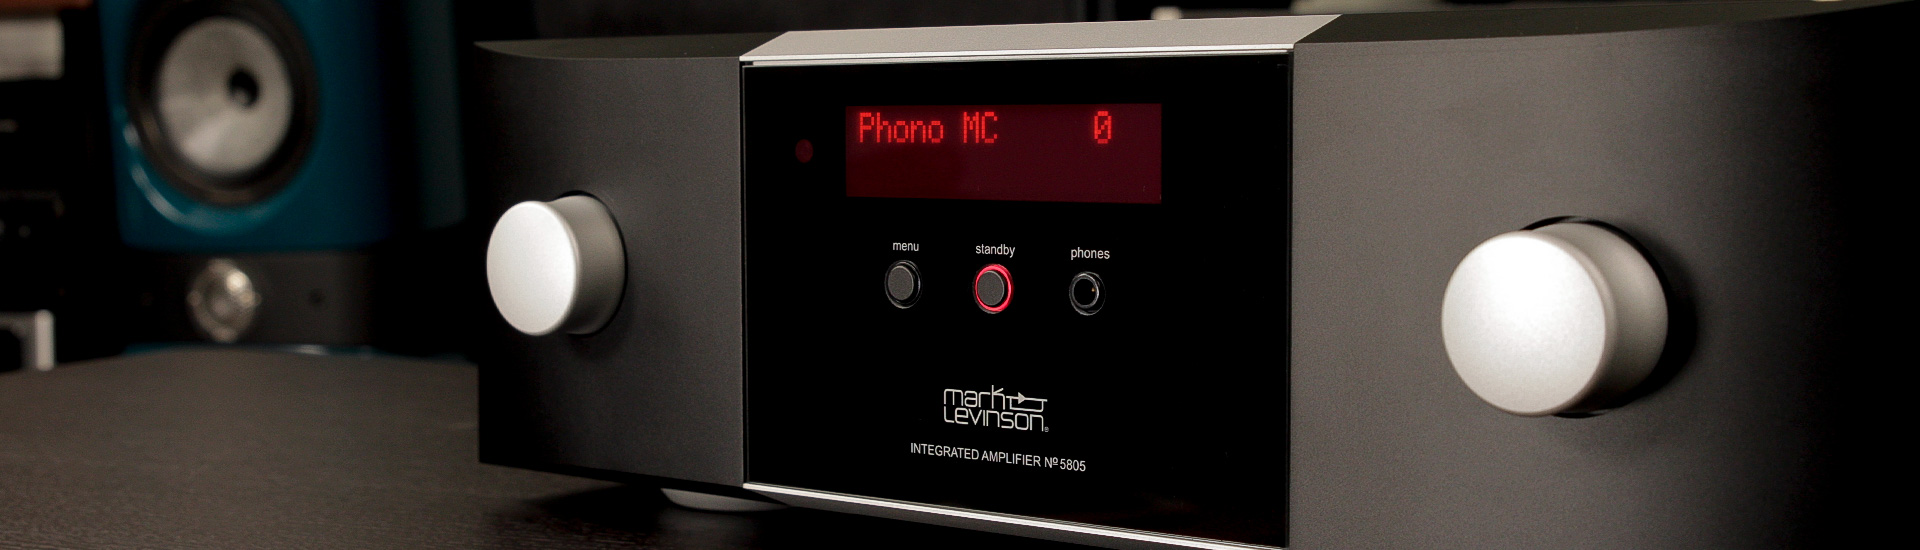 Review Mark Levinson No 5805 Integrated Amplifier World